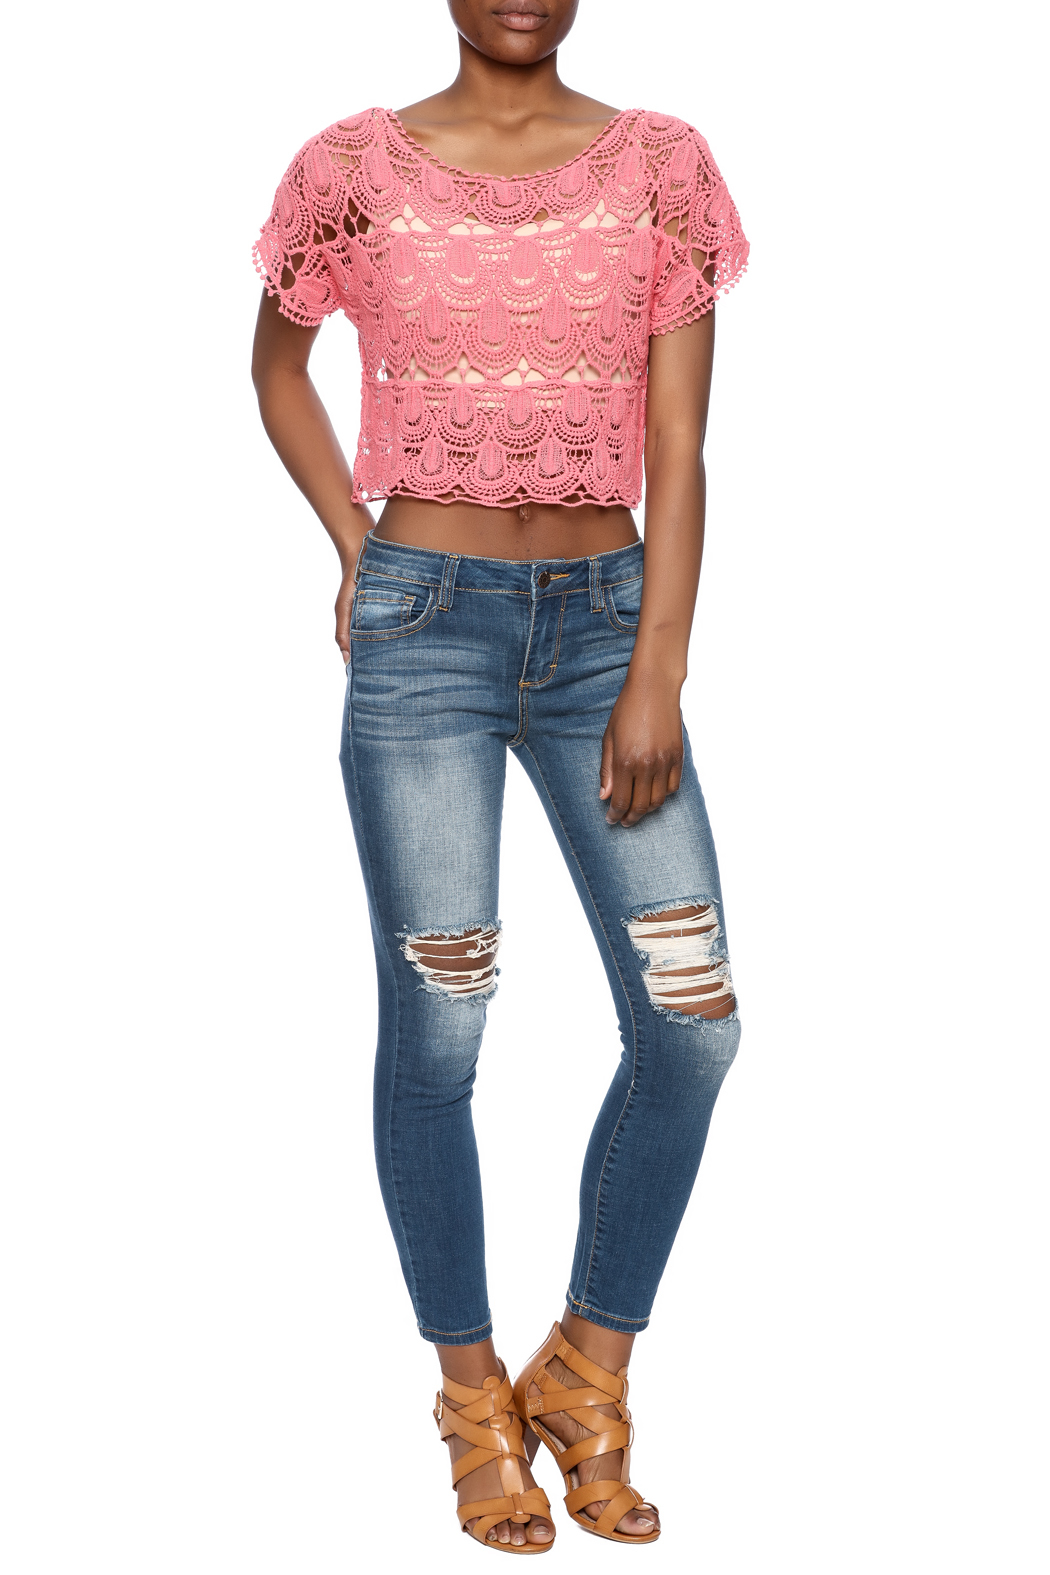 C Mode Coral Crocheted Crop Top - Front Full Image